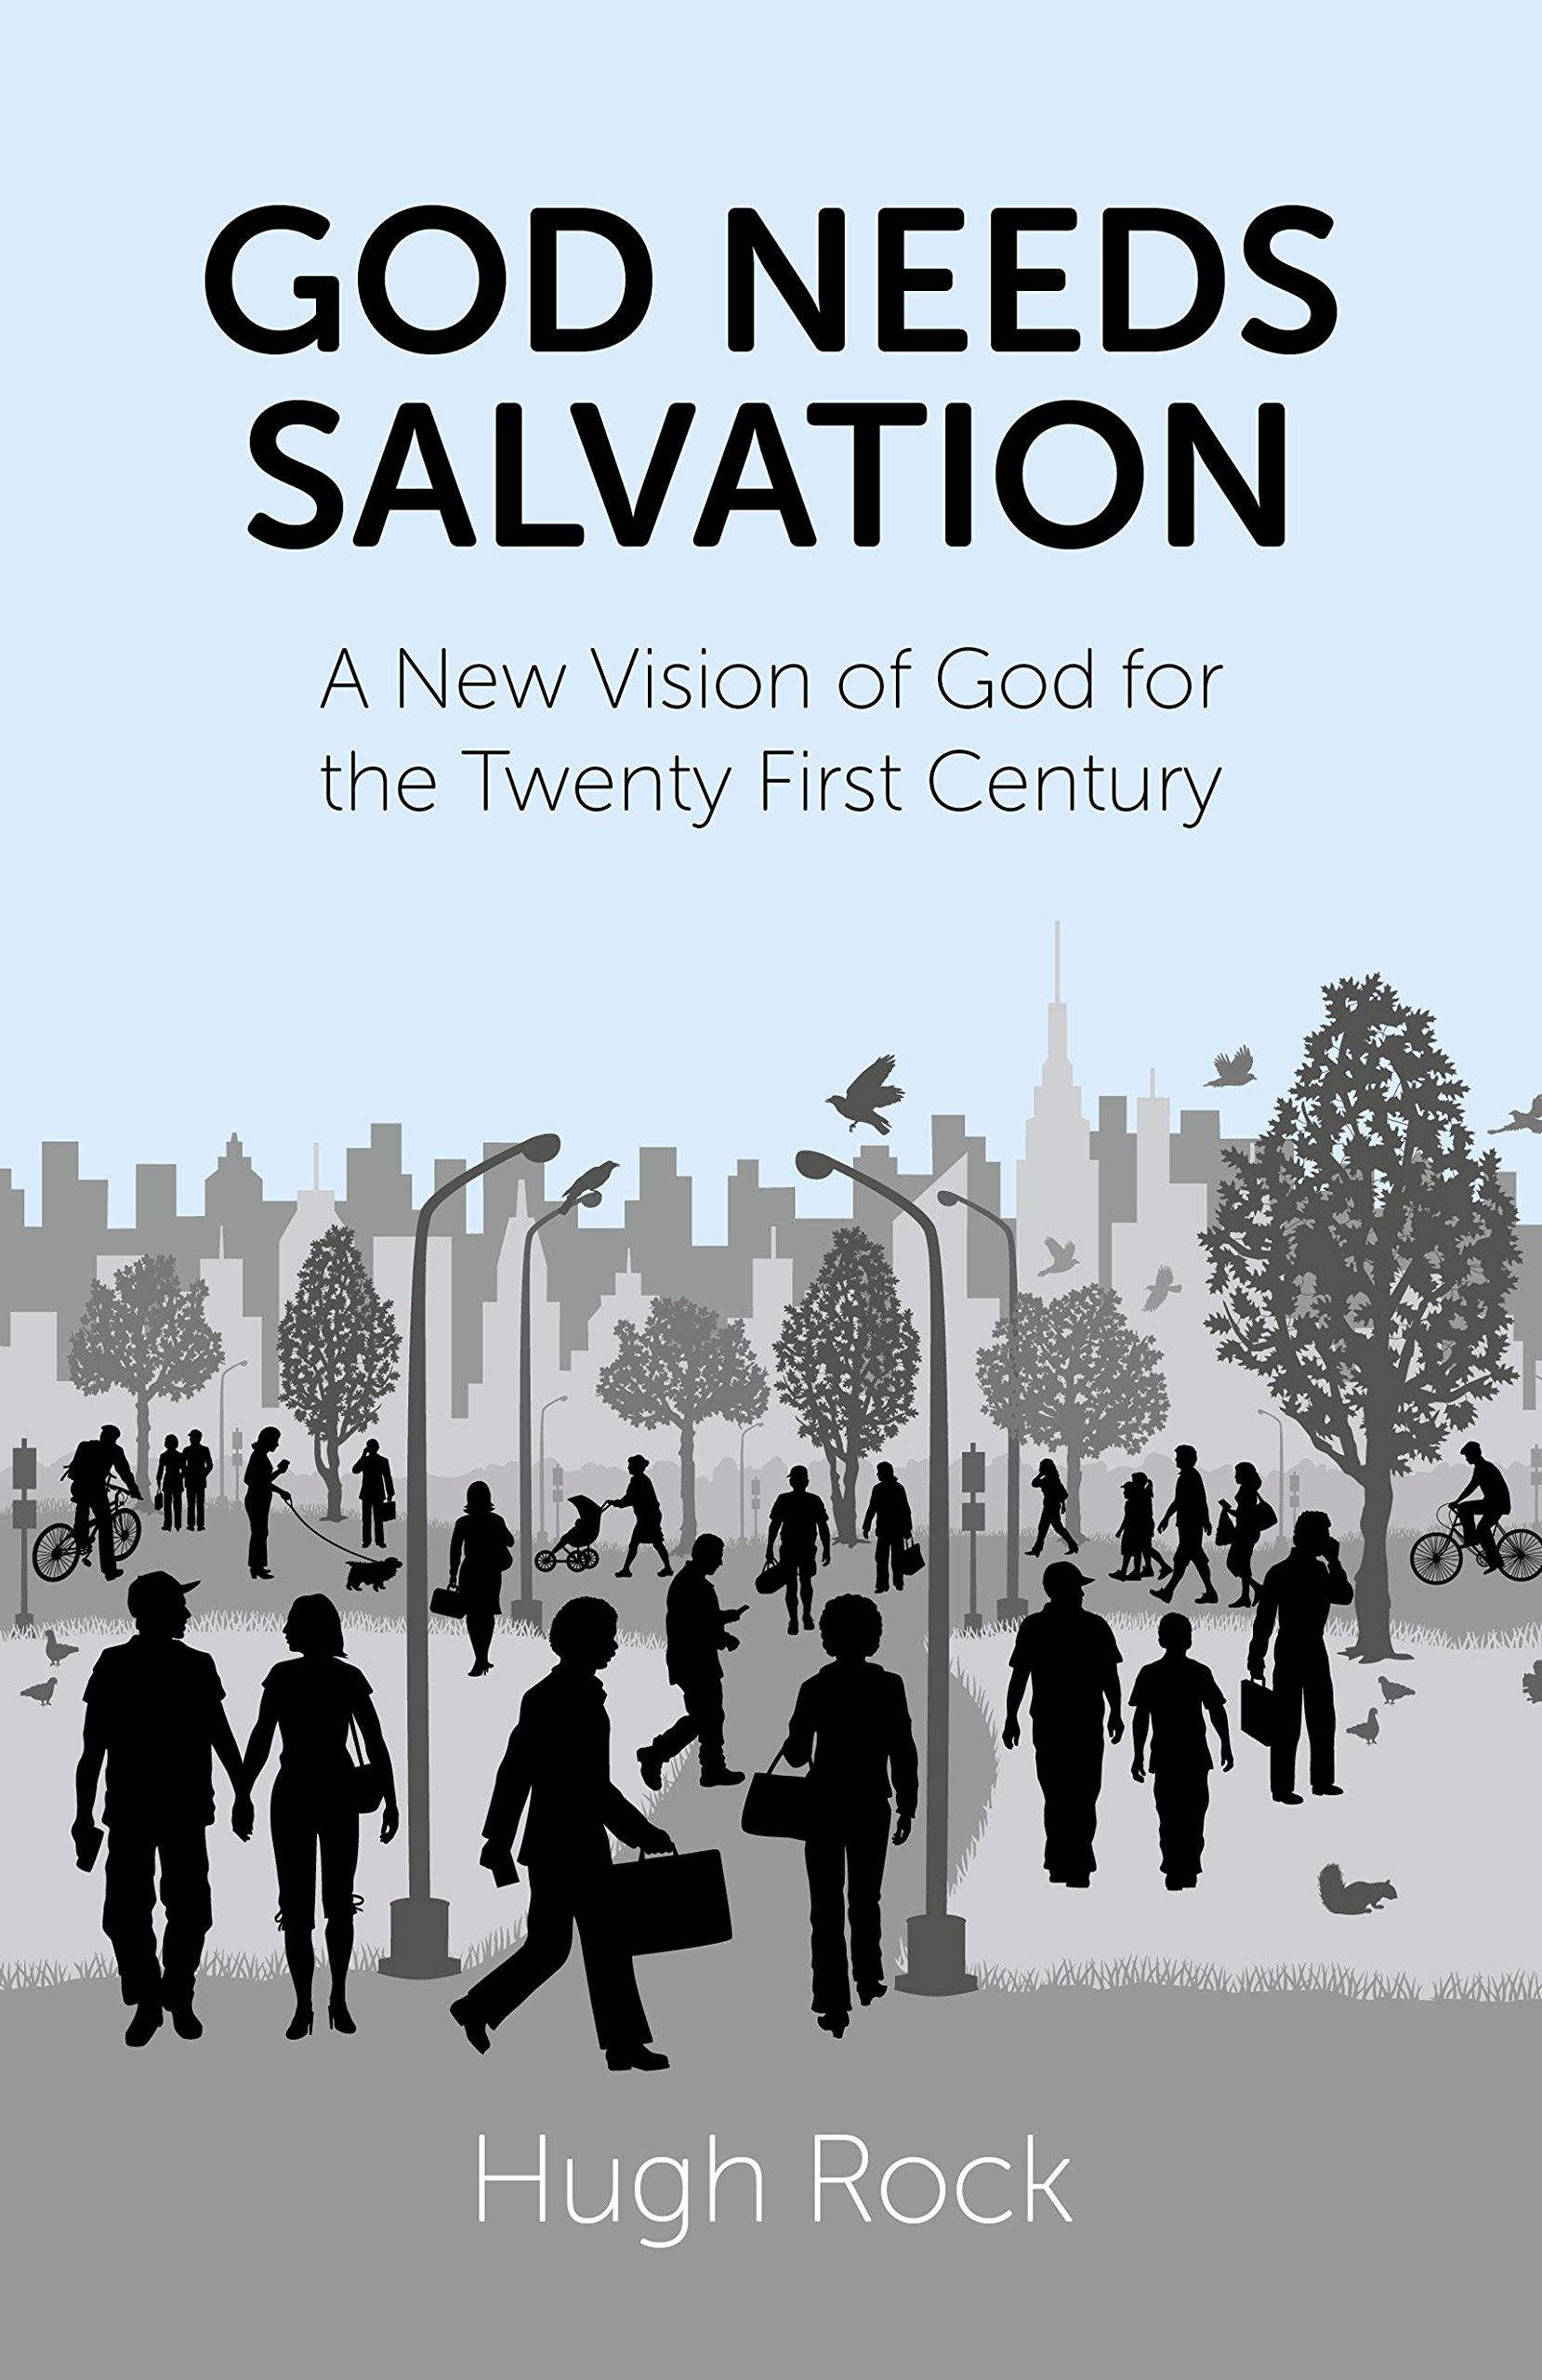 Book review: God Needs Salvation